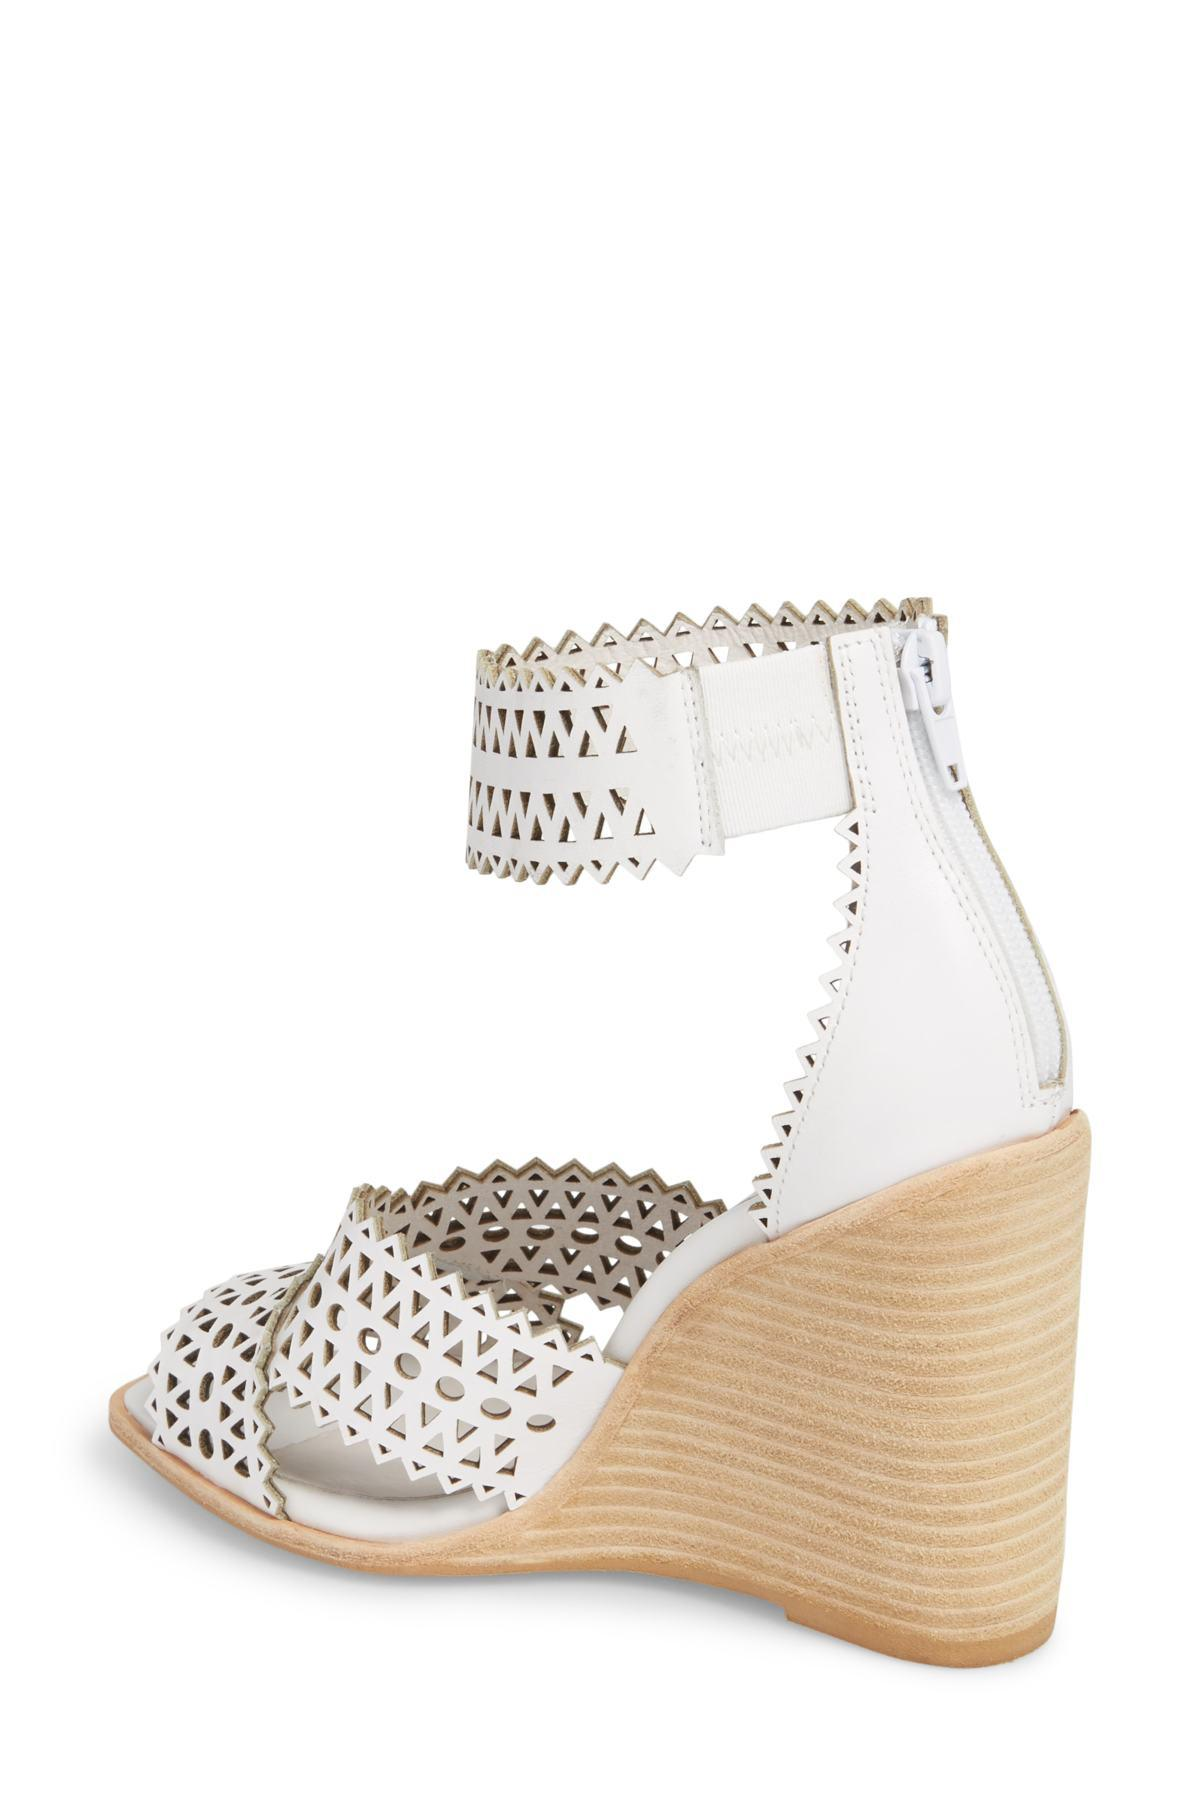 0f0b57a5b37 Jeffrey Campbell - White Besante Perforated Wedge Sandal (women) - Lyst.  View fullscreen